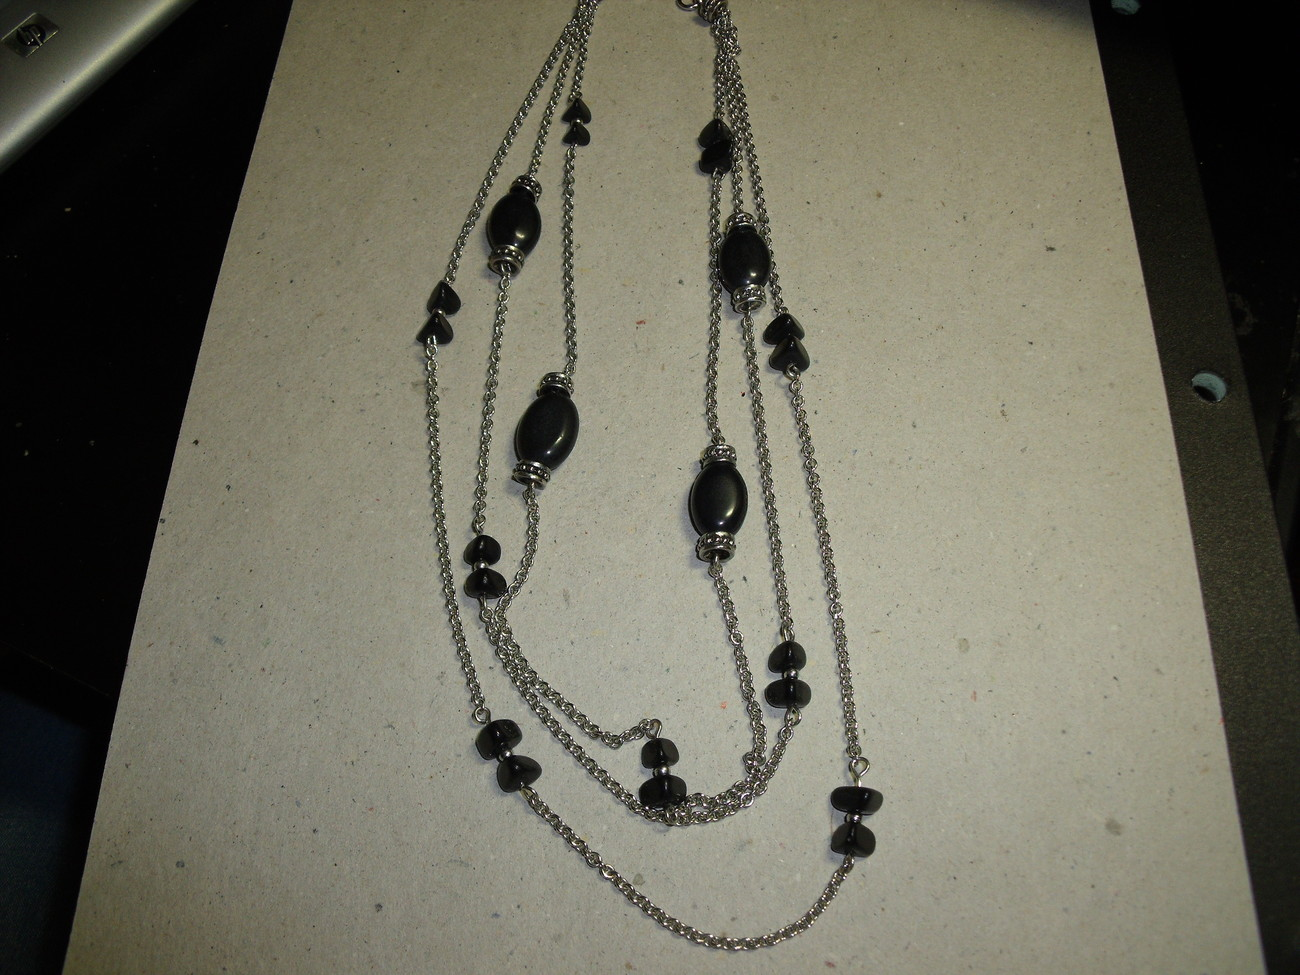 Vintage multiple chain necklace with black beads